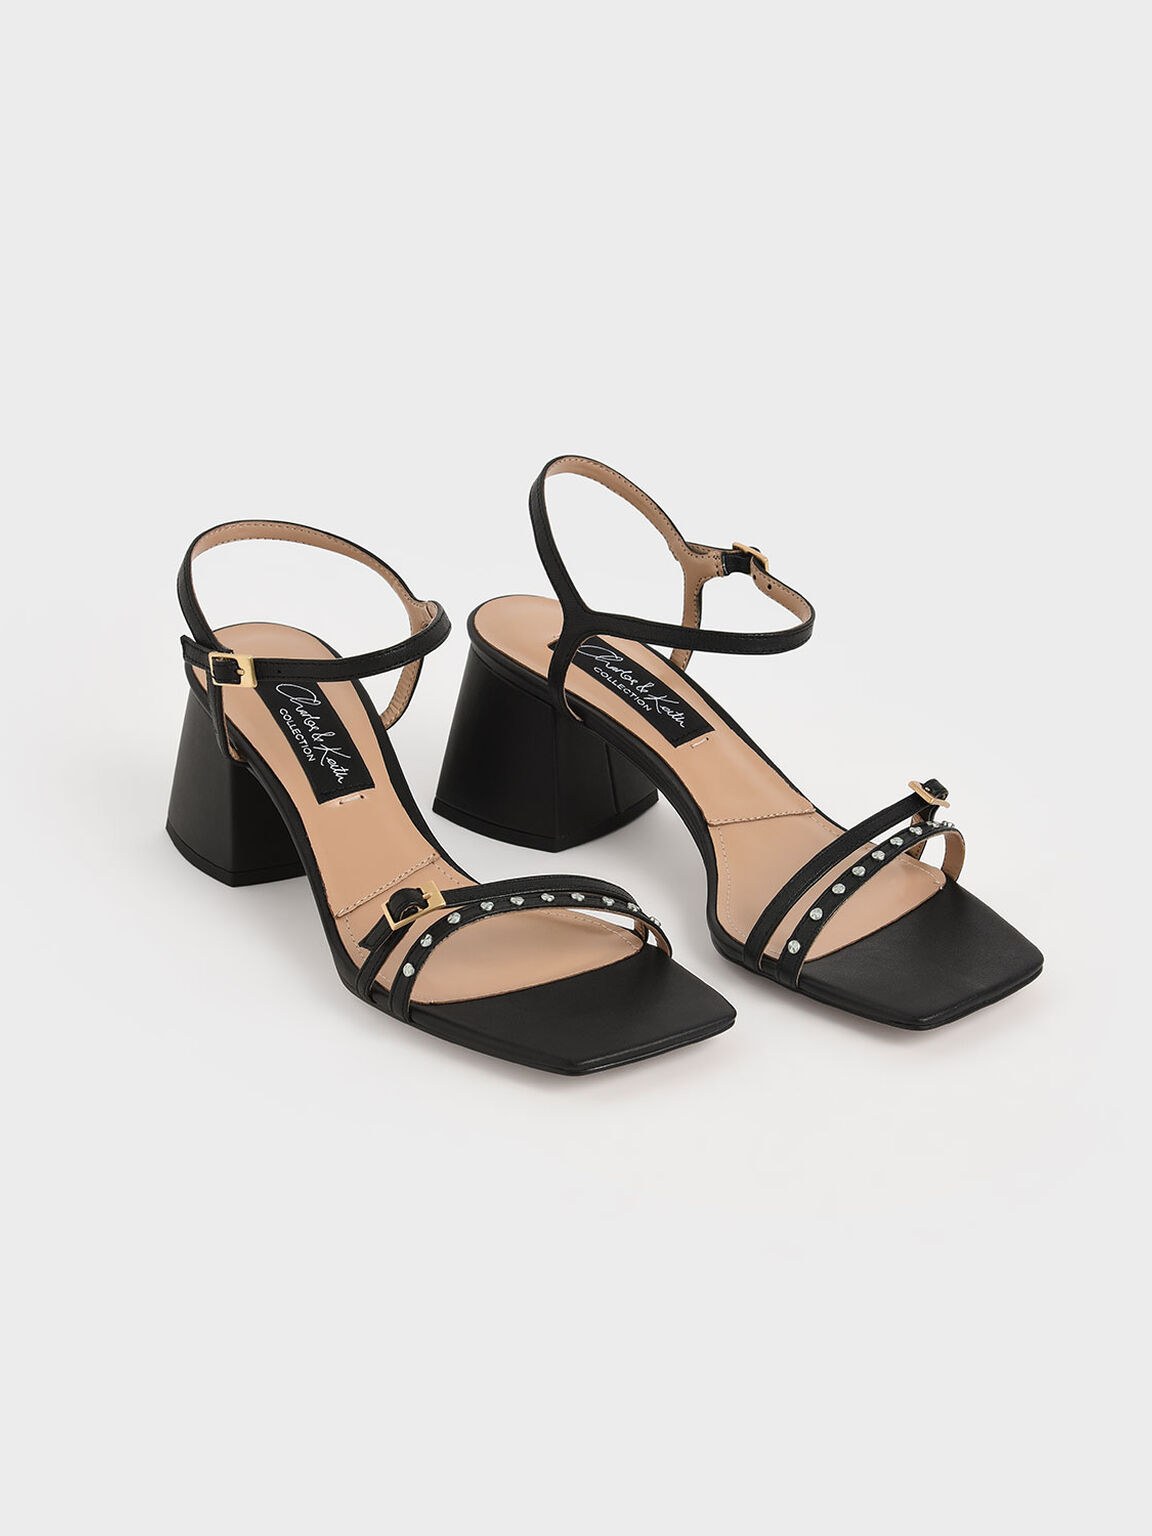 Studded Leather Heeled Sandals, Black, hi-res